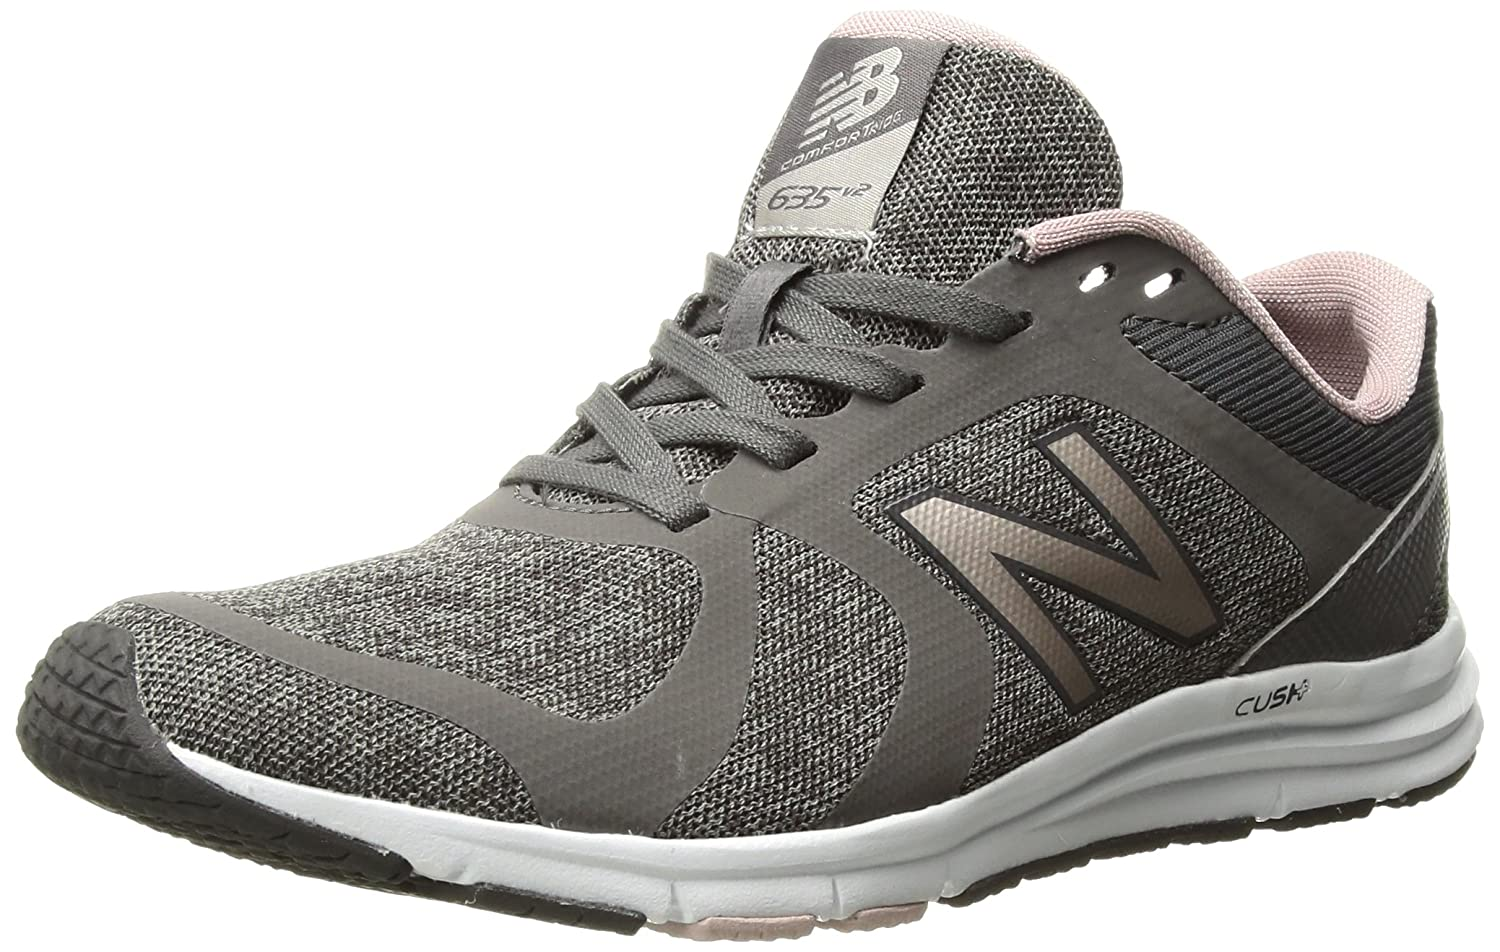 New Balance Women's 635v2 Cushioning B01N2XMCJ6 12 B(M) US|Grey